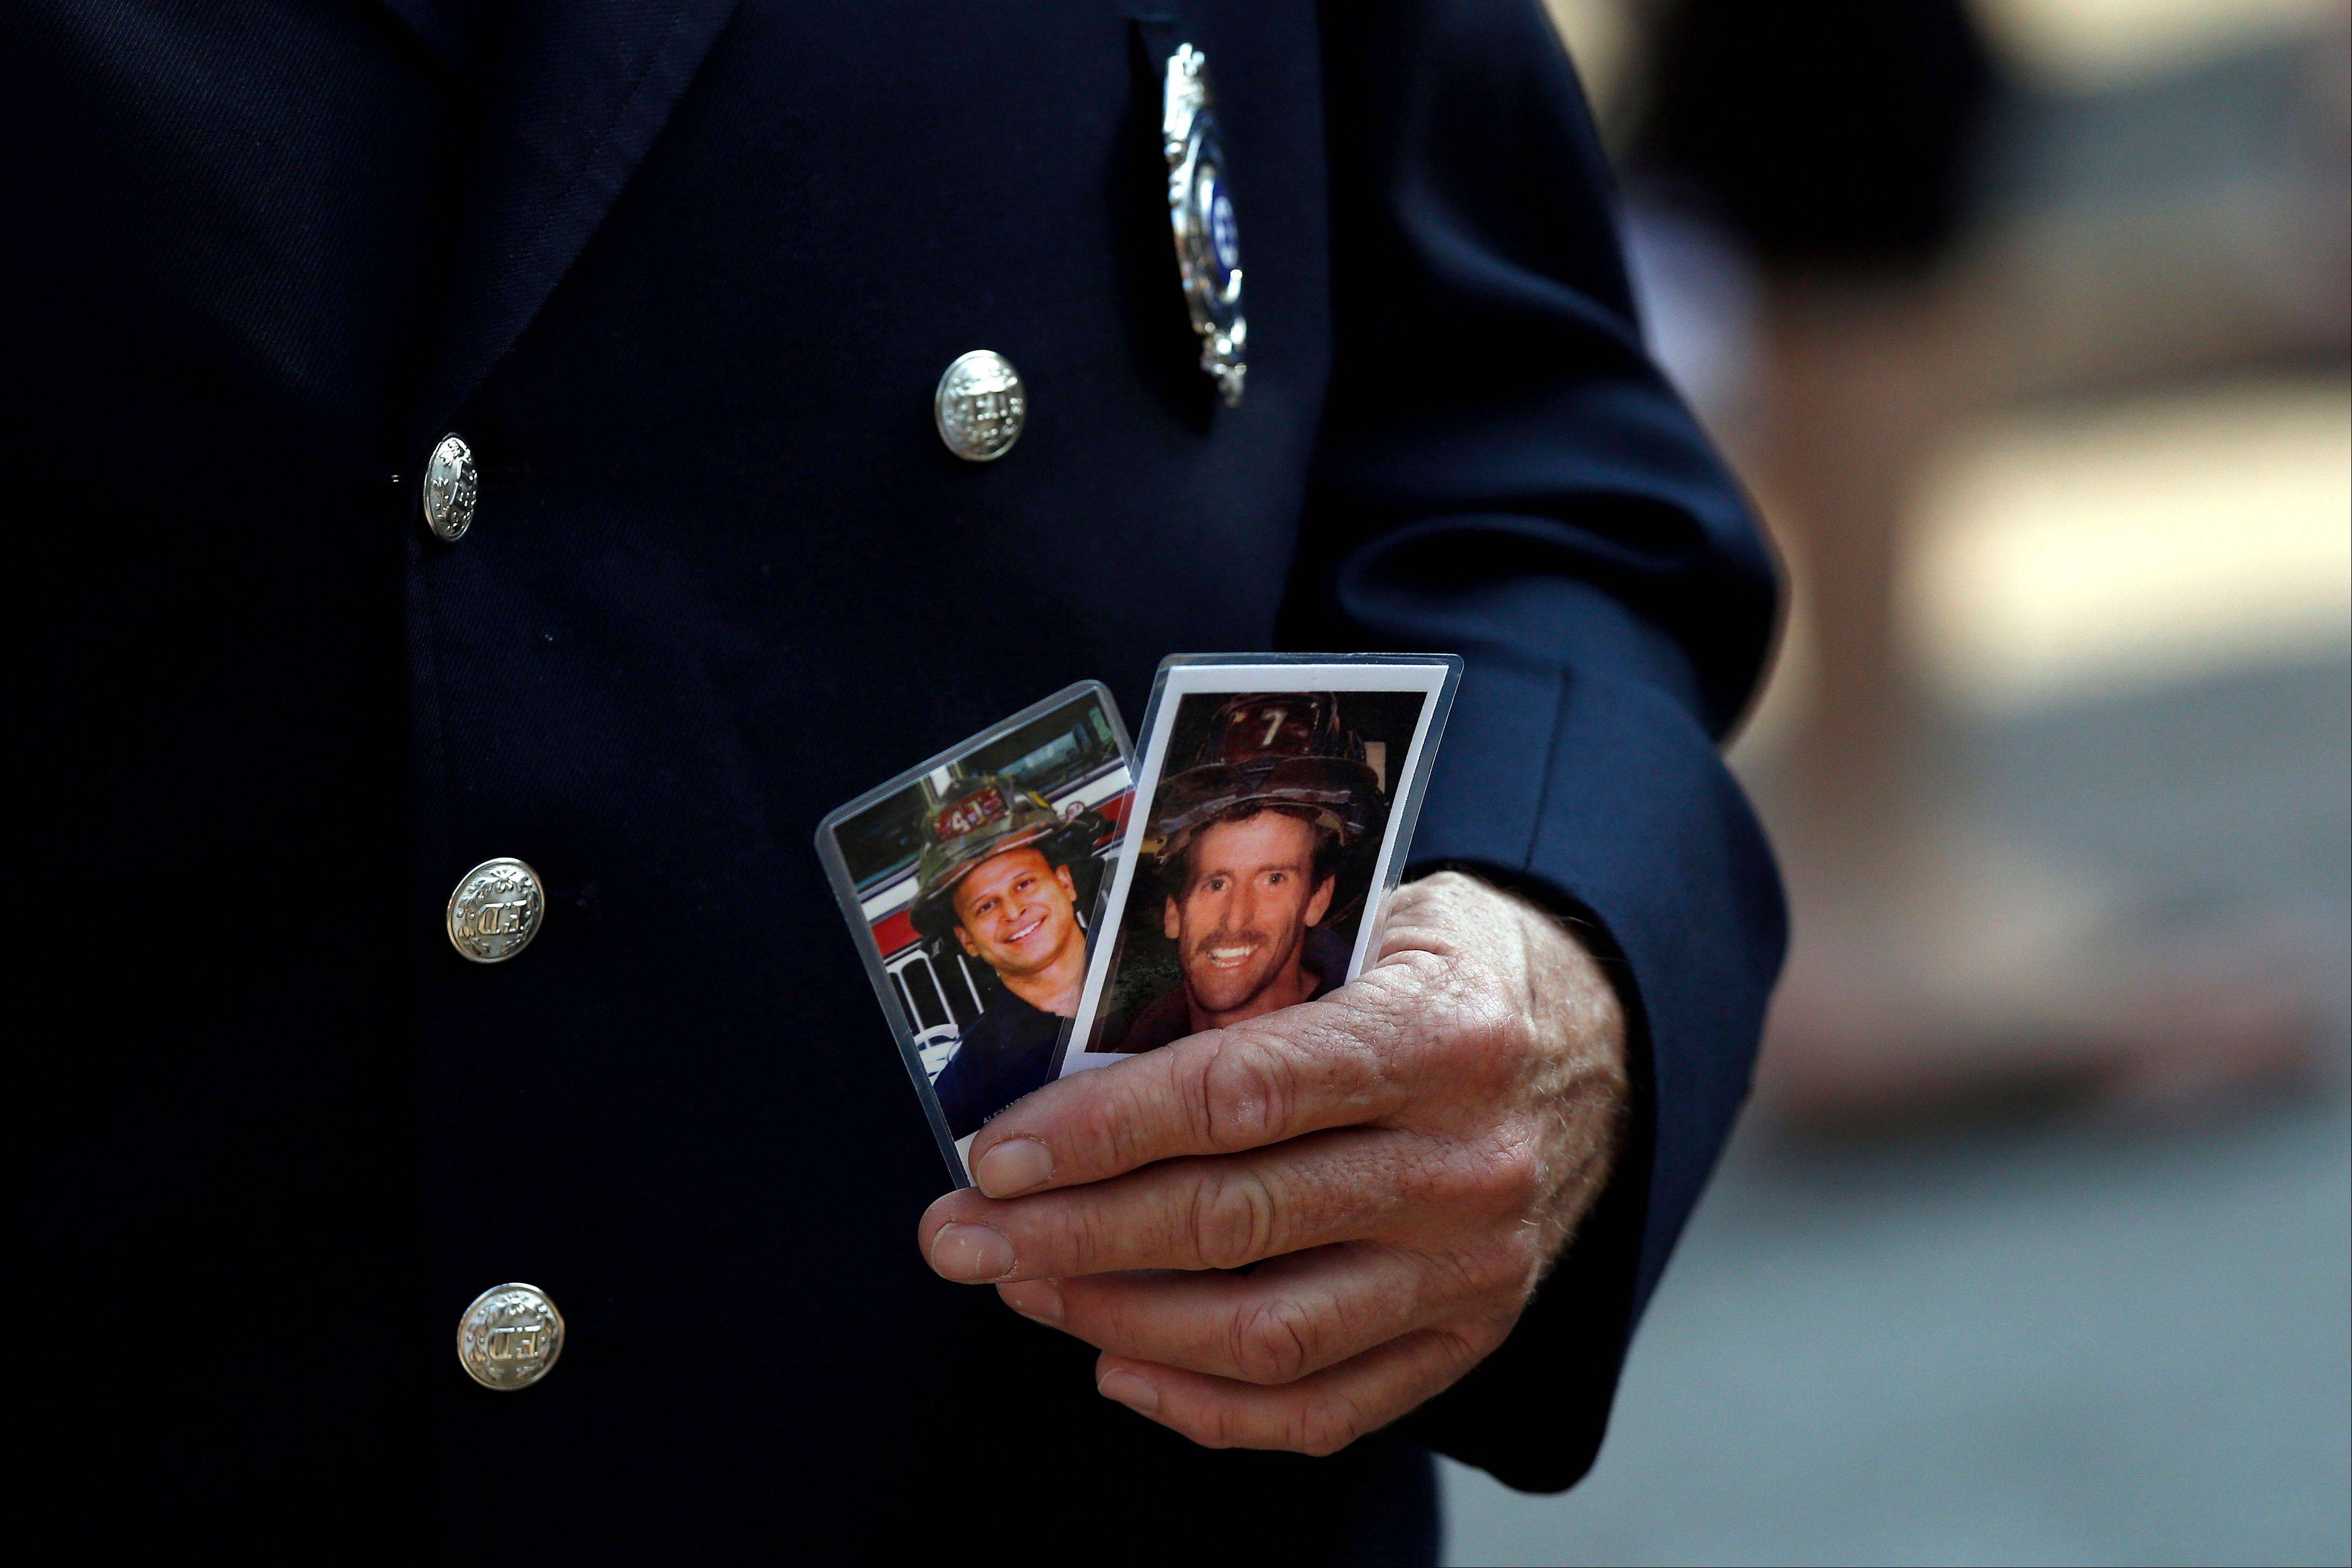 Friends and relatives of the victims of the 9/11 terrorist attacks gather at the National September 11 Memorial at the World Trade Center site, Wednesday, Sept. 11, 2013, for a ceremony marking the 12th anniversary of the attacks in New York.